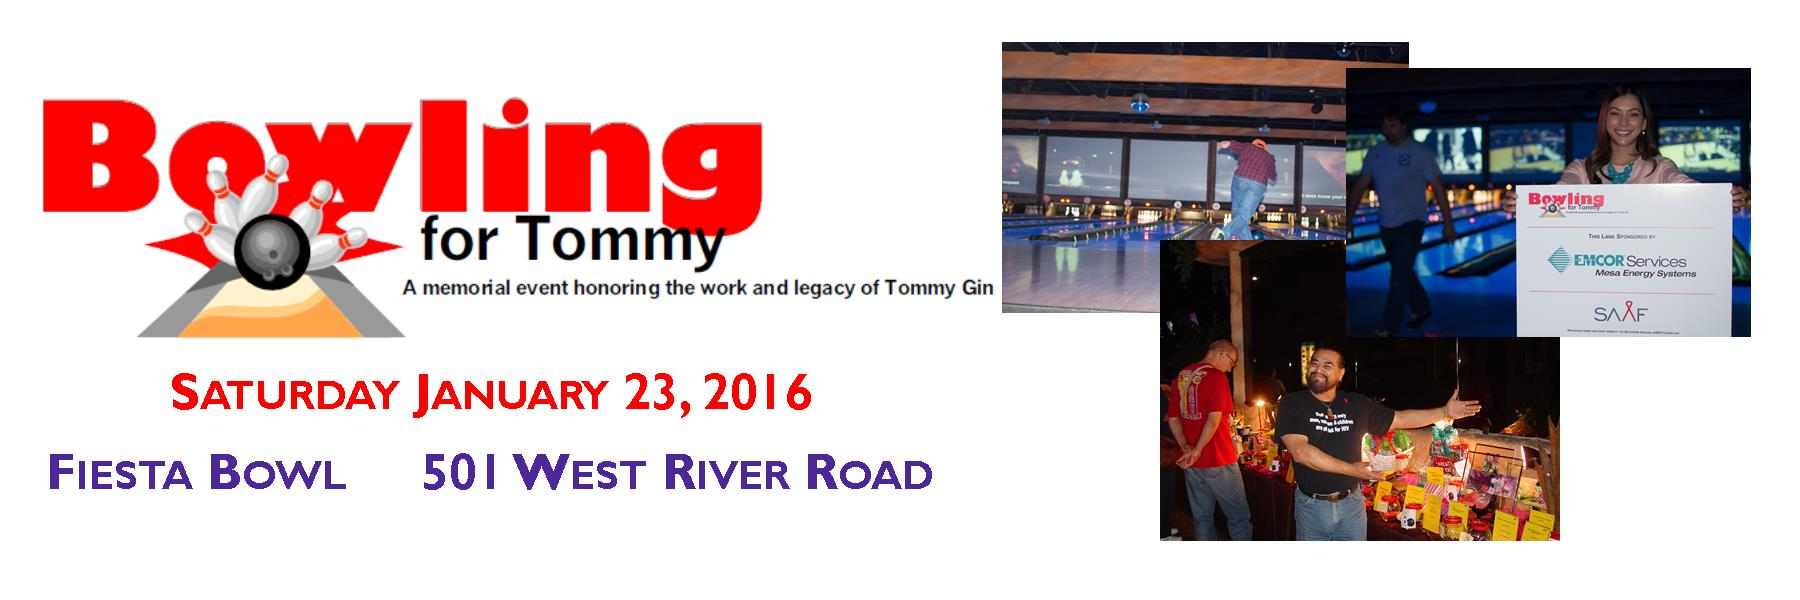 Bowling for Tommy is Saturday January 23. HURRY- Lanes are filling up fast for this great event!